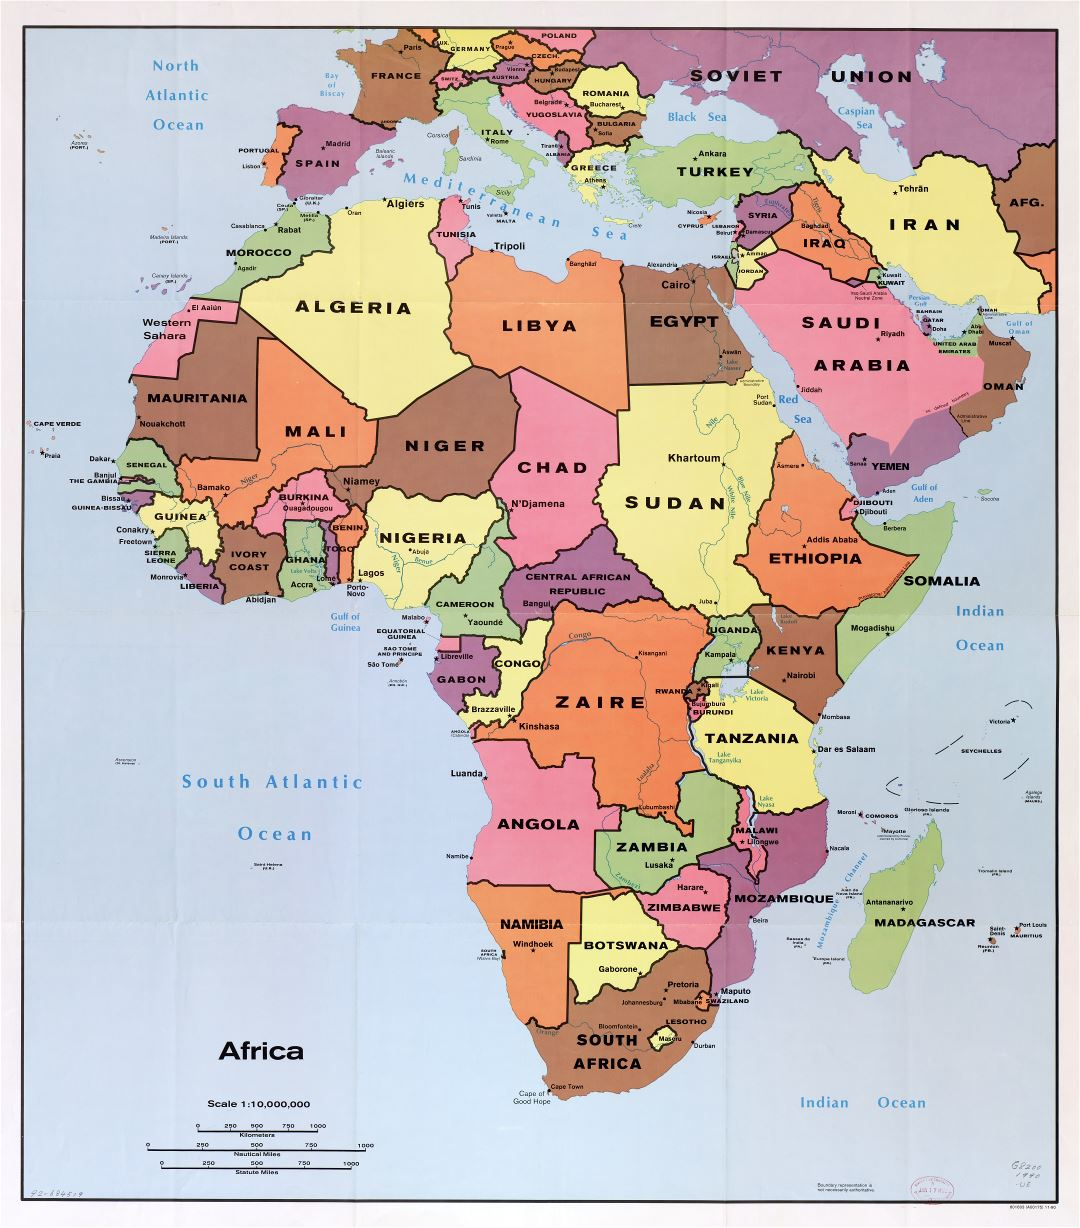 Large scale detail political map of Africa with the marks of